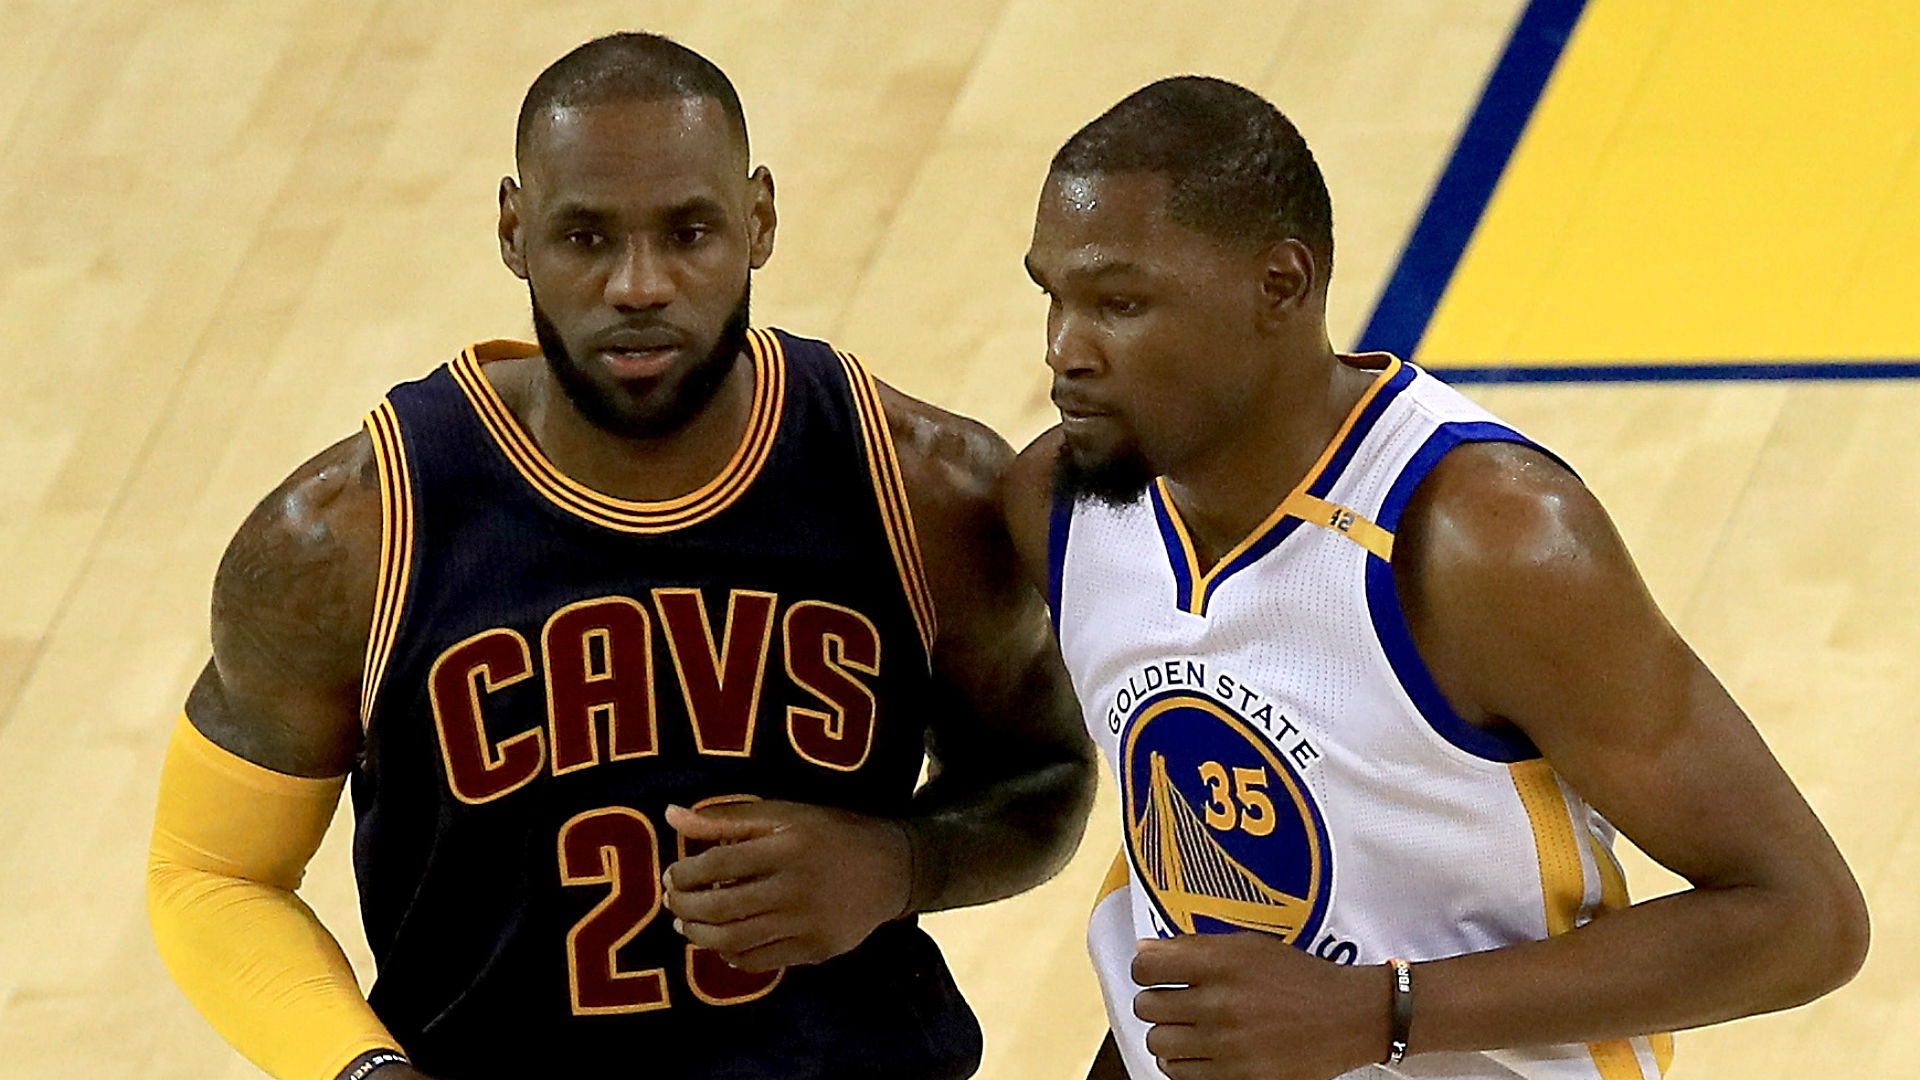 Cavs not looking to slow down pace of Finals with Warriors